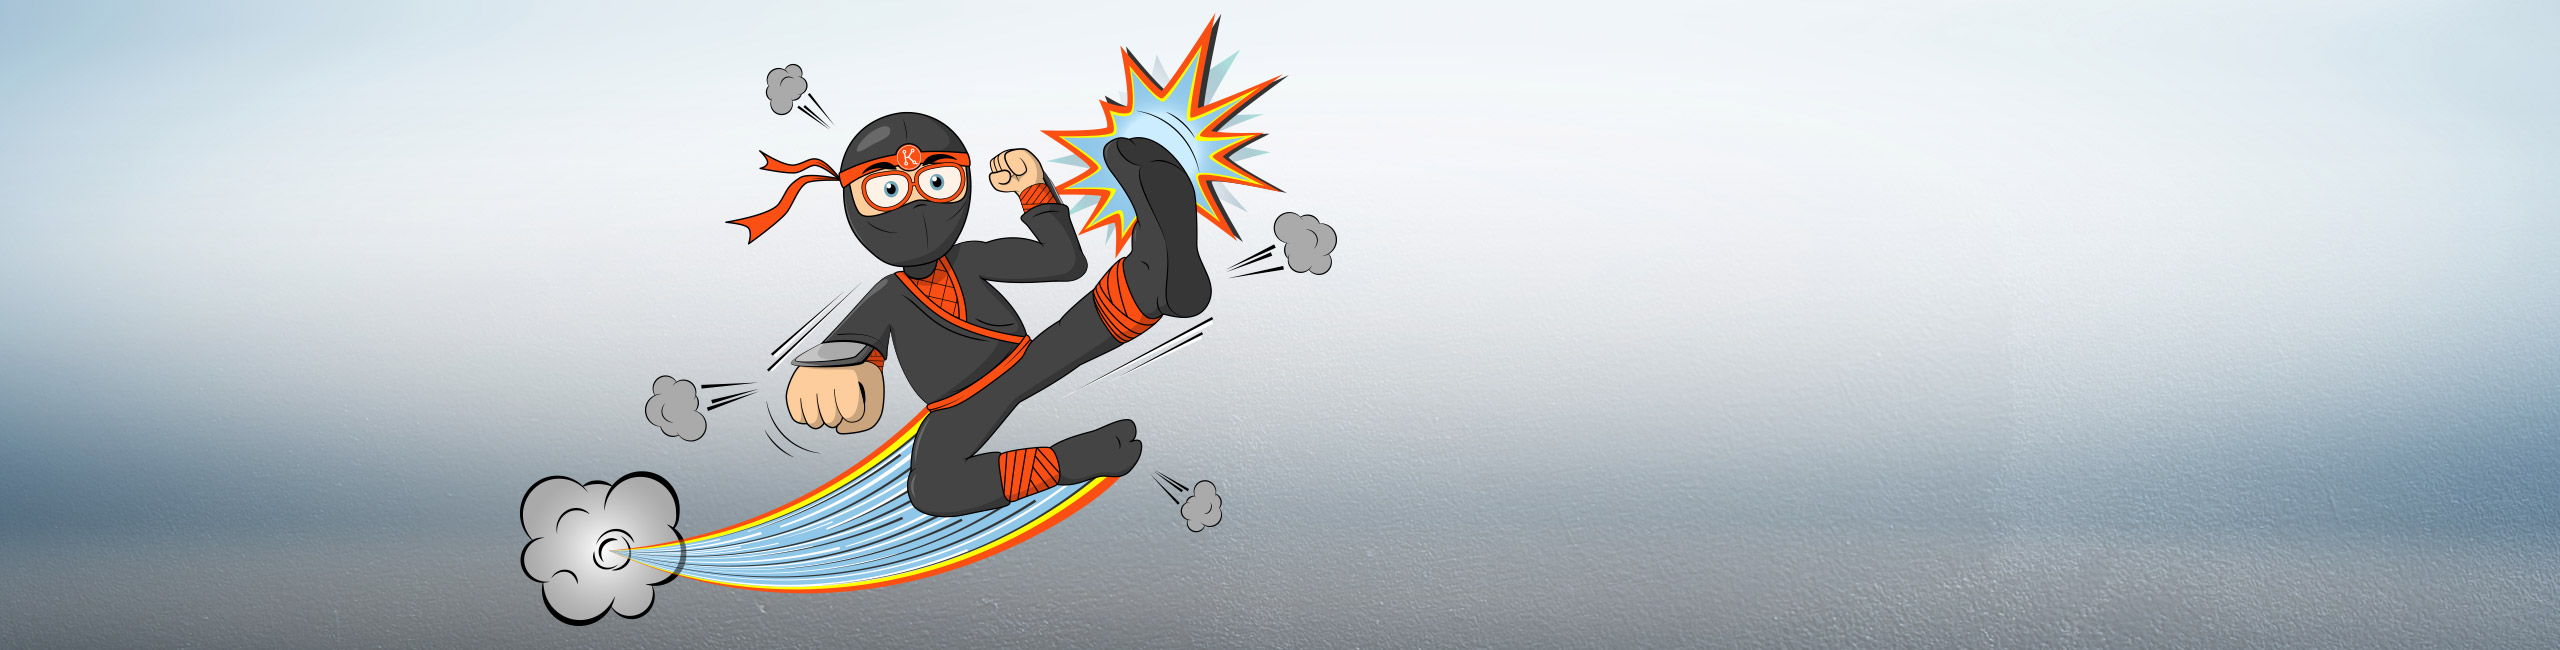 Become an IT Ninja with KACE and find your path to endpoint enlightenment. CN